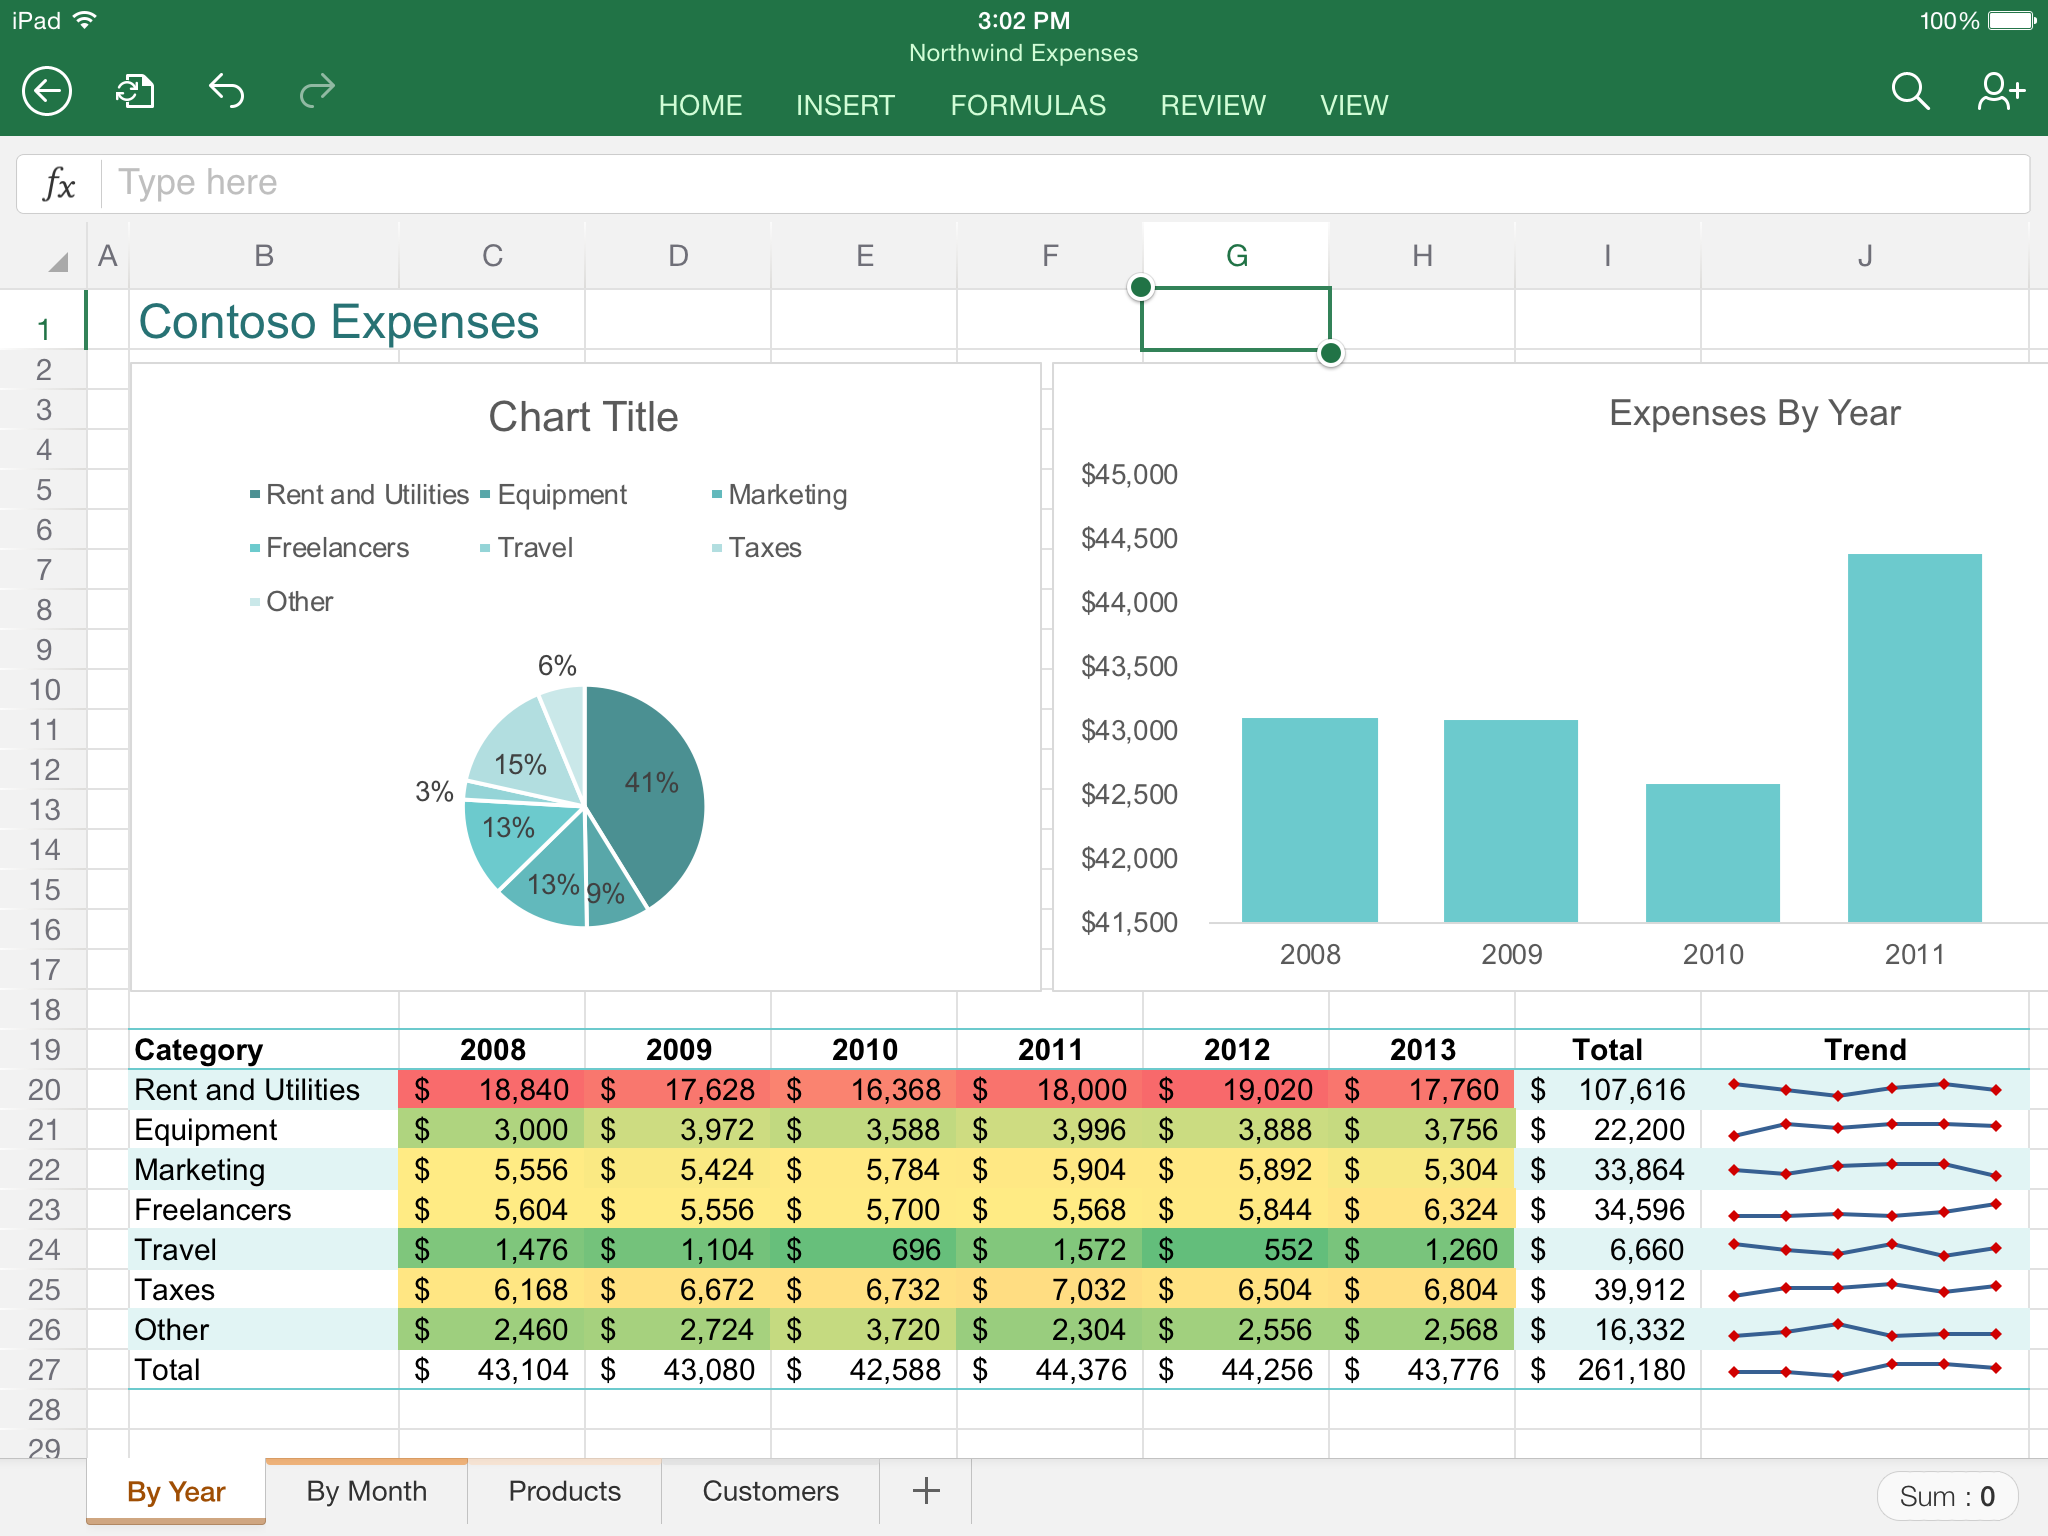 Ediblewildsus  Terrific App Highlight Excel  Mobile Digital Now With Engaging Excel In Action With Appealing What Is Worksheet In Ms Excel Also Ms Excel  Shortcut Keys List In Addition Vba Code For Excel Examples And Shading Excel As Well As Add Years To Date In Excel Additionally Excel Bar Chart With Line From Youstonybrookedu With Ediblewildsus  Engaging App Highlight Excel  Mobile Digital Now With Appealing Excel In Action And Terrific What Is Worksheet In Ms Excel Also Ms Excel  Shortcut Keys List In Addition Vba Code For Excel Examples From Youstonybrookedu